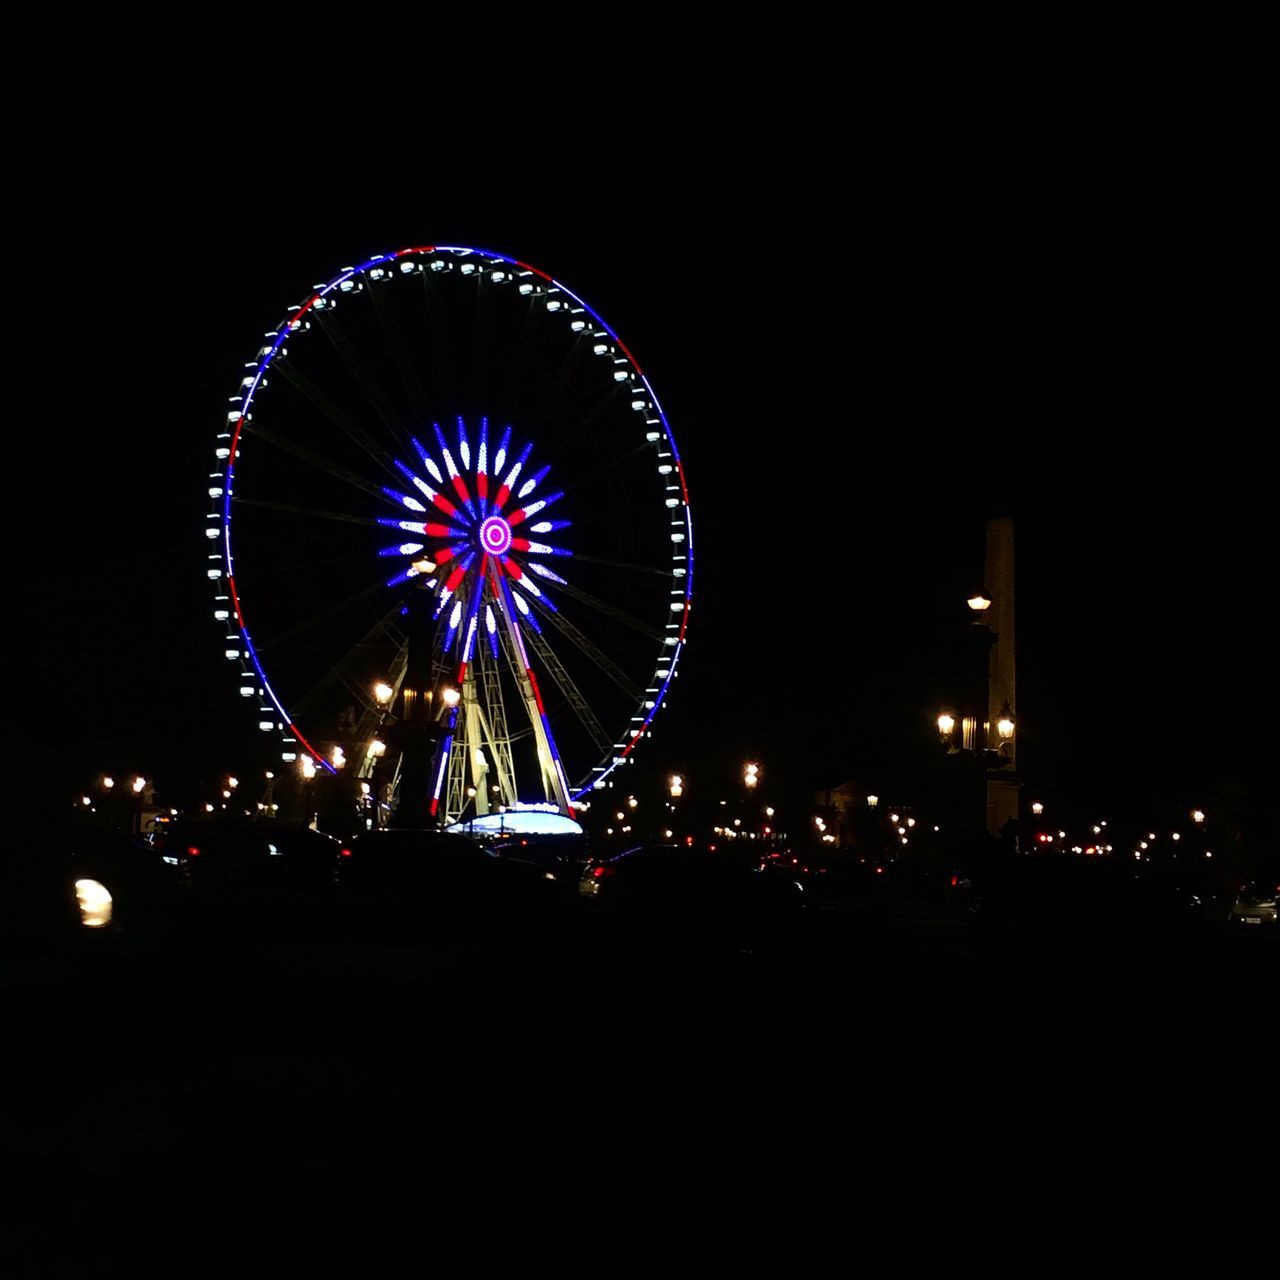 arts culture and entertainment, night, illuminated, amusement park, leisure activity, amusement park ride, outdoors, low angle view, ferris wheel, sky, large group of people, clear sky, people